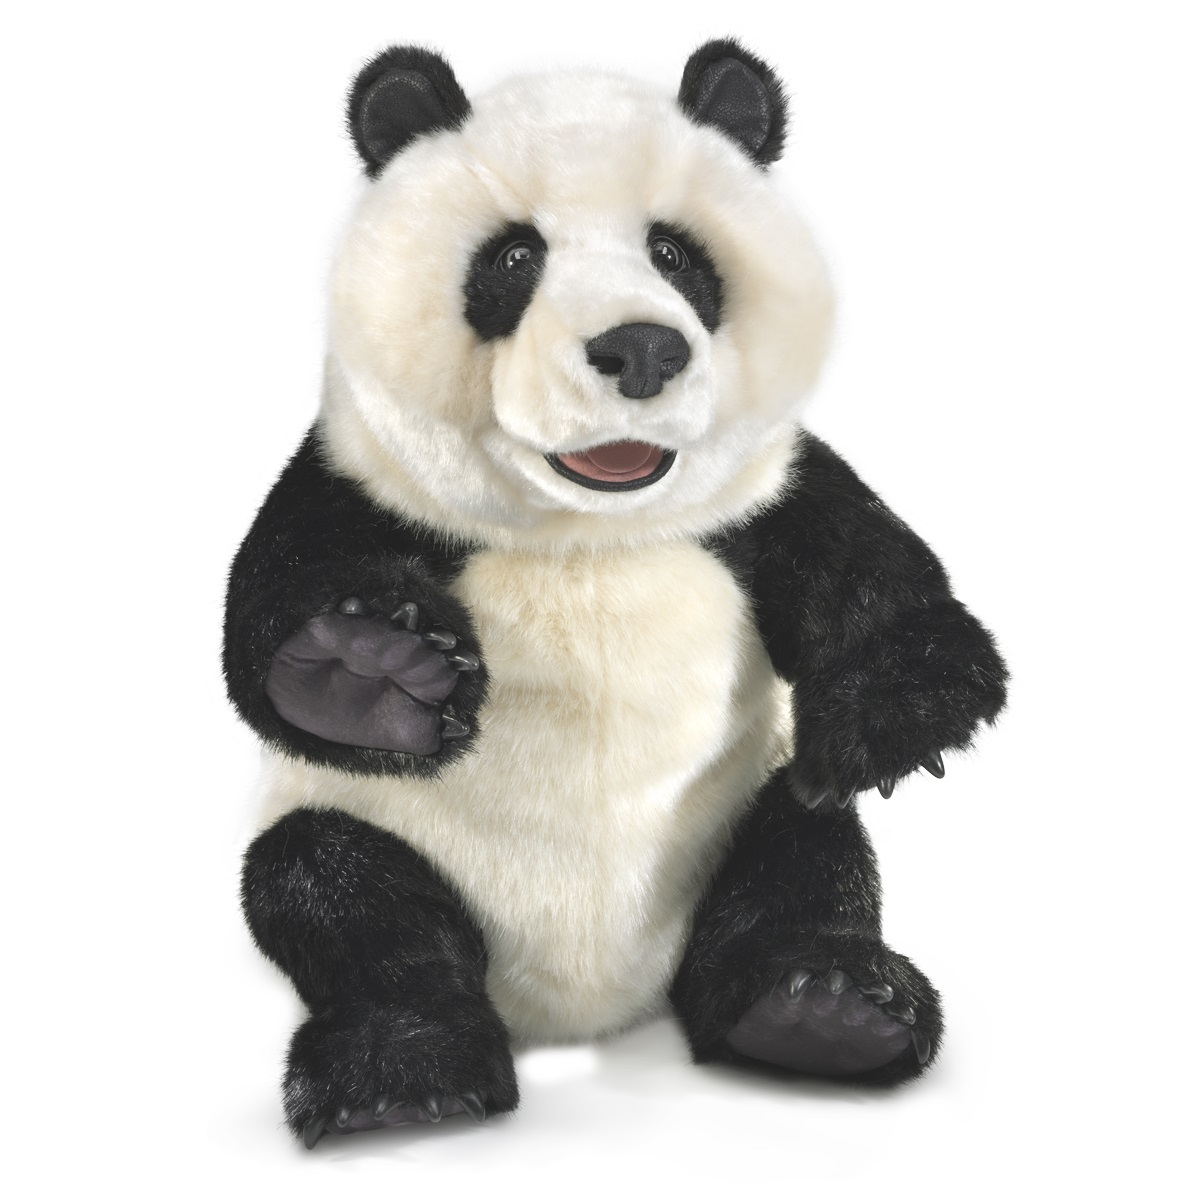 Giant Panda Cub Puppet by Folkmanis 3149